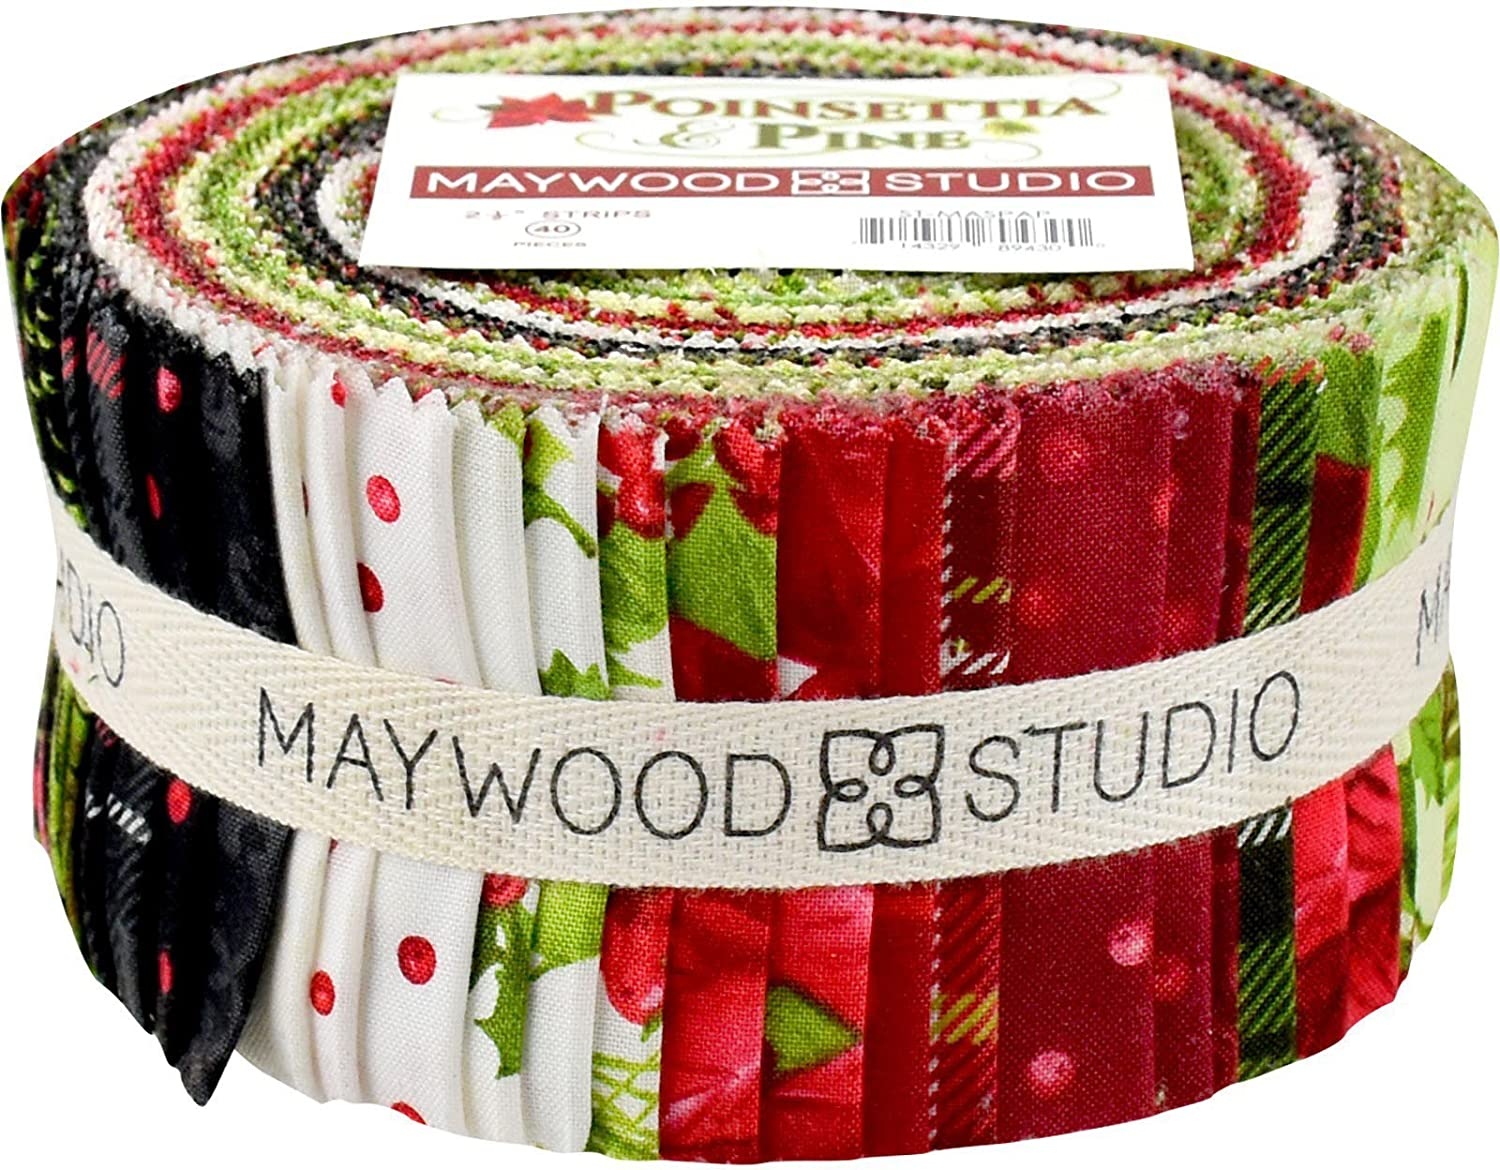 Poinsettia & Pine Strips 40 2.5-inch Strips Jelly Roll Maywood Studio